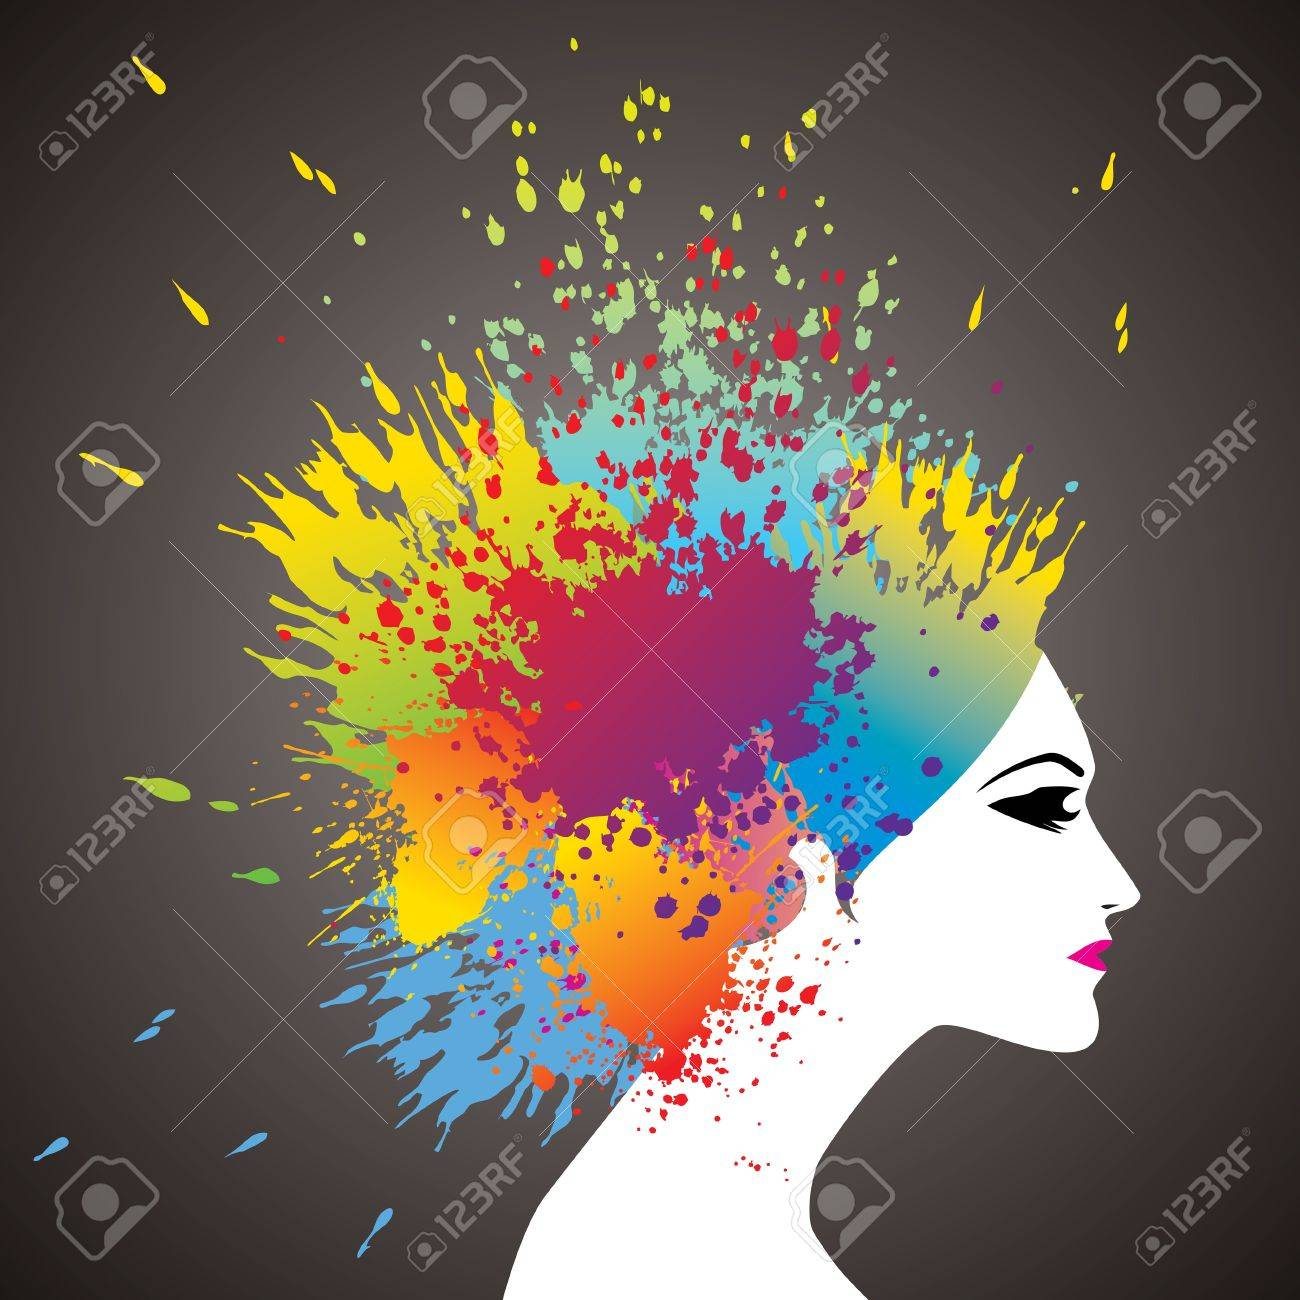 Beautiful Girl With Colorful Hair Splashes Royalty Free Cliparts